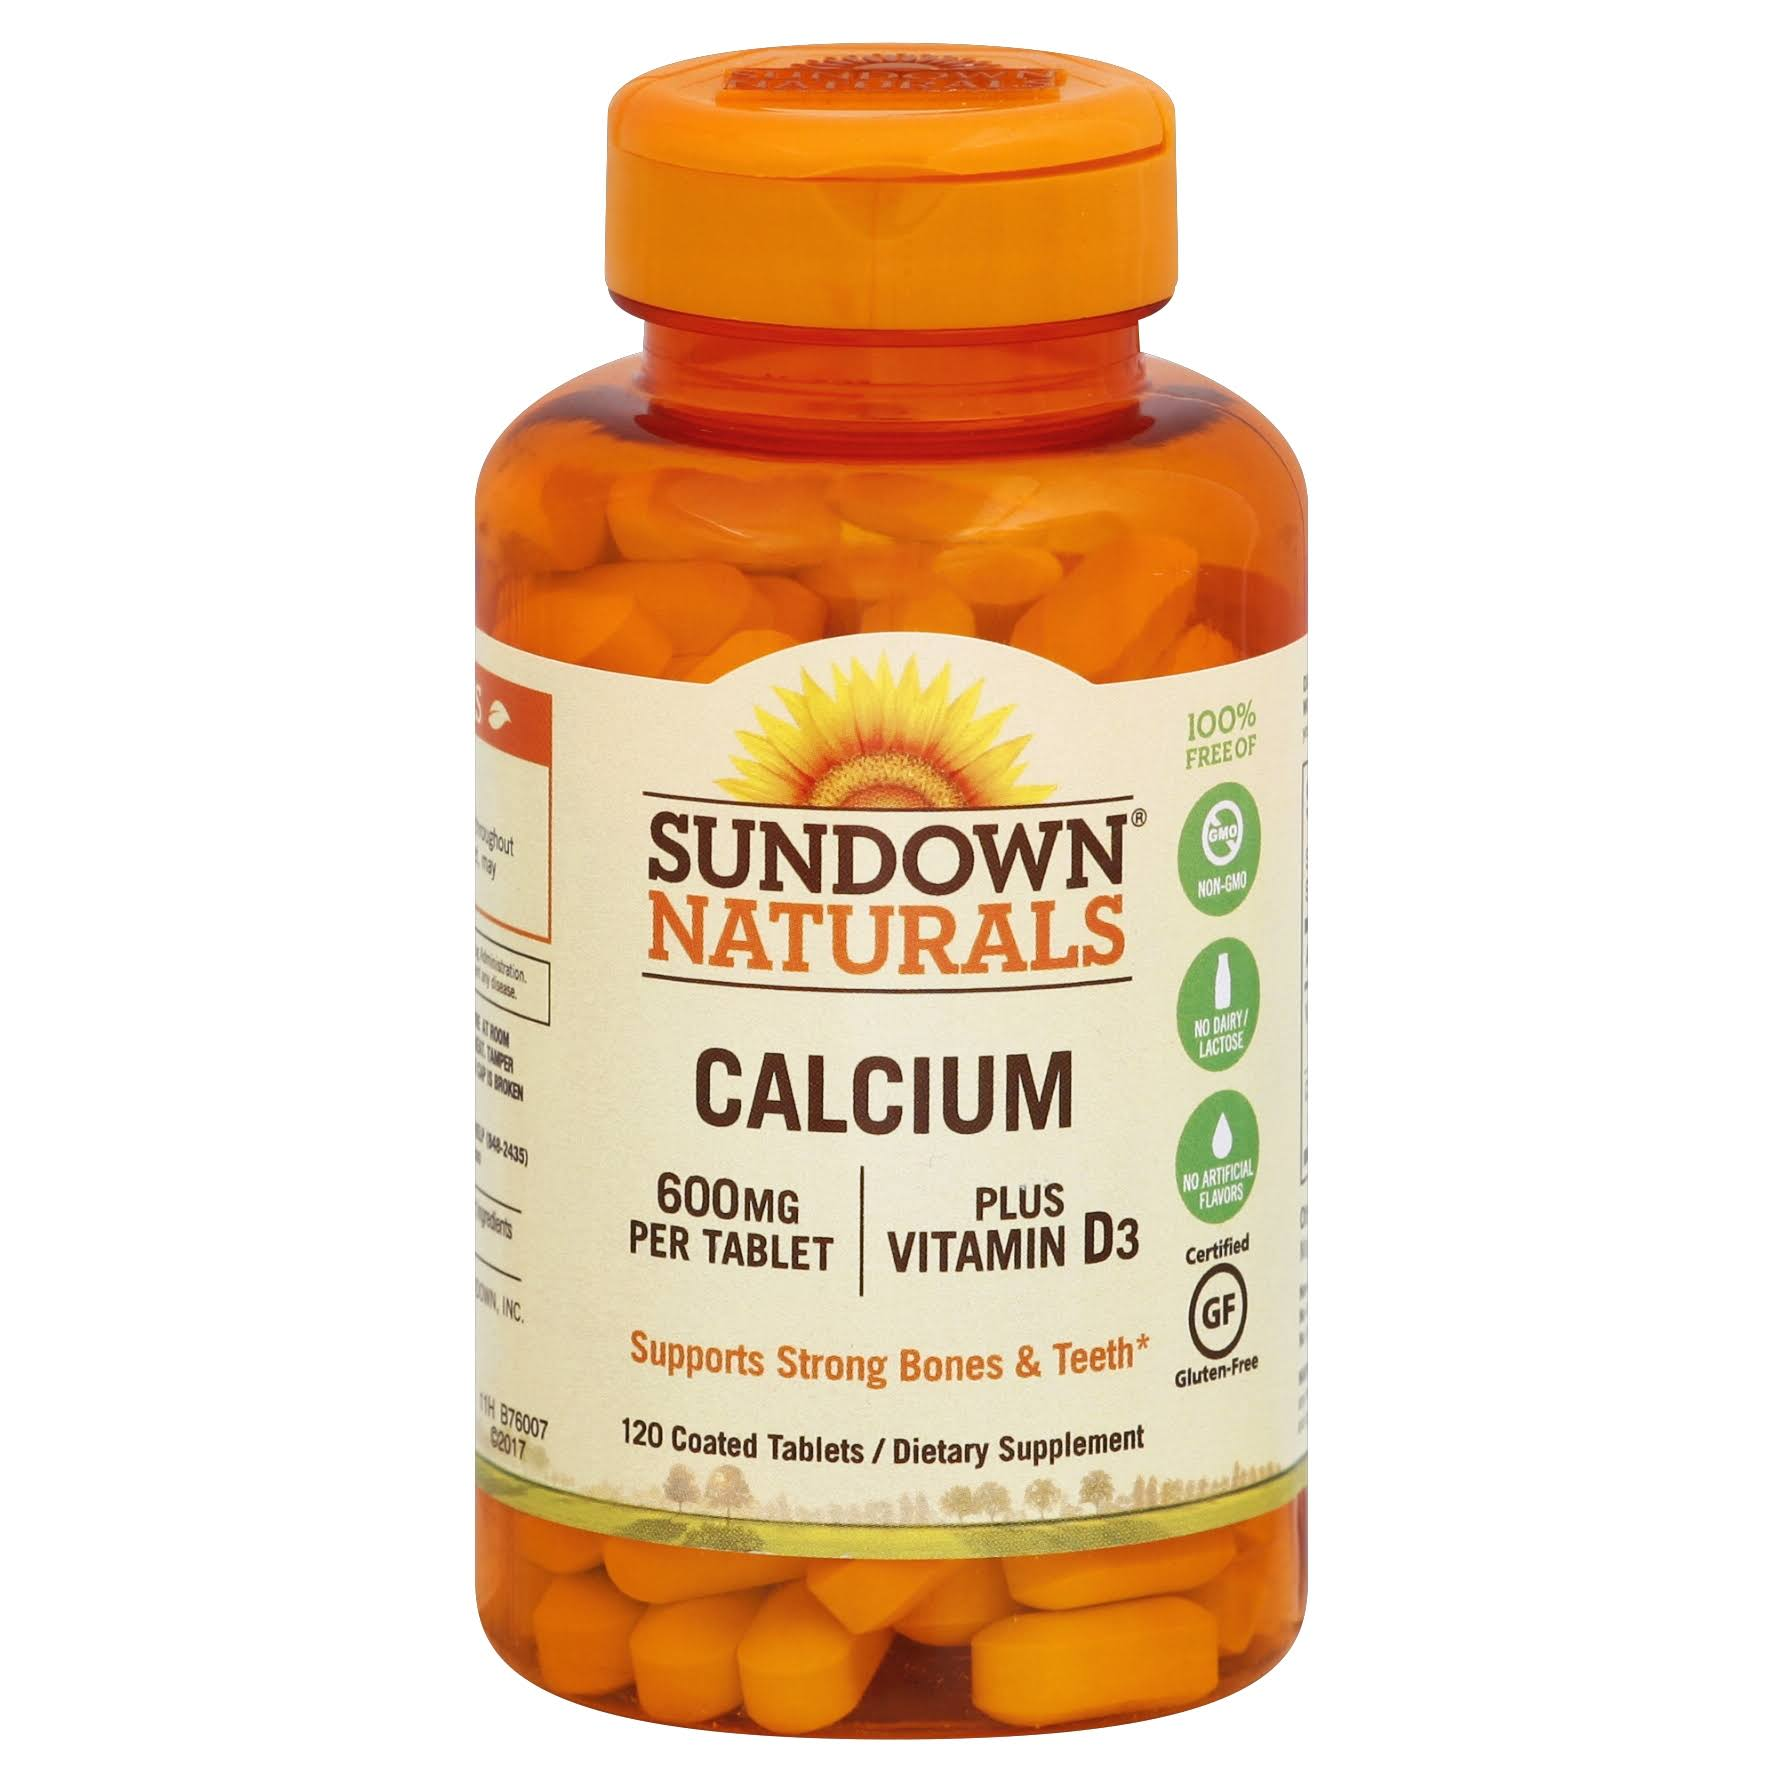 Sundown Naturals Calcium Plus Vitamin D3 Supplement - 120 Tablets